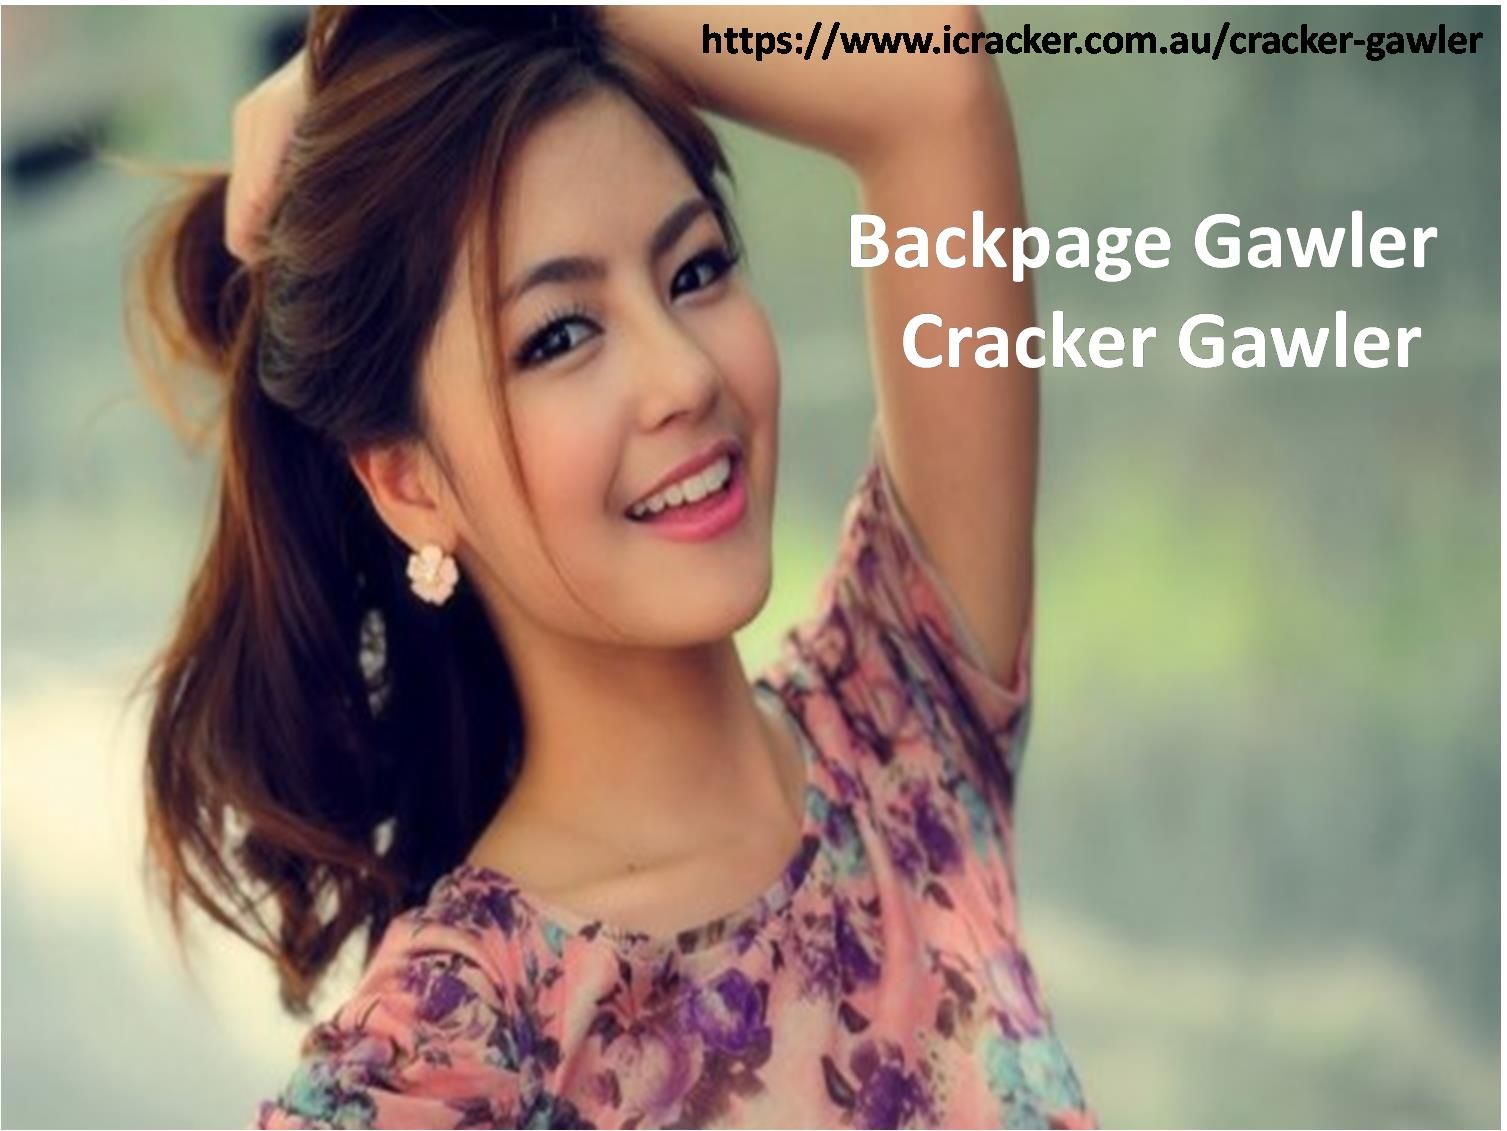 For more details about cracker gawler follow the link